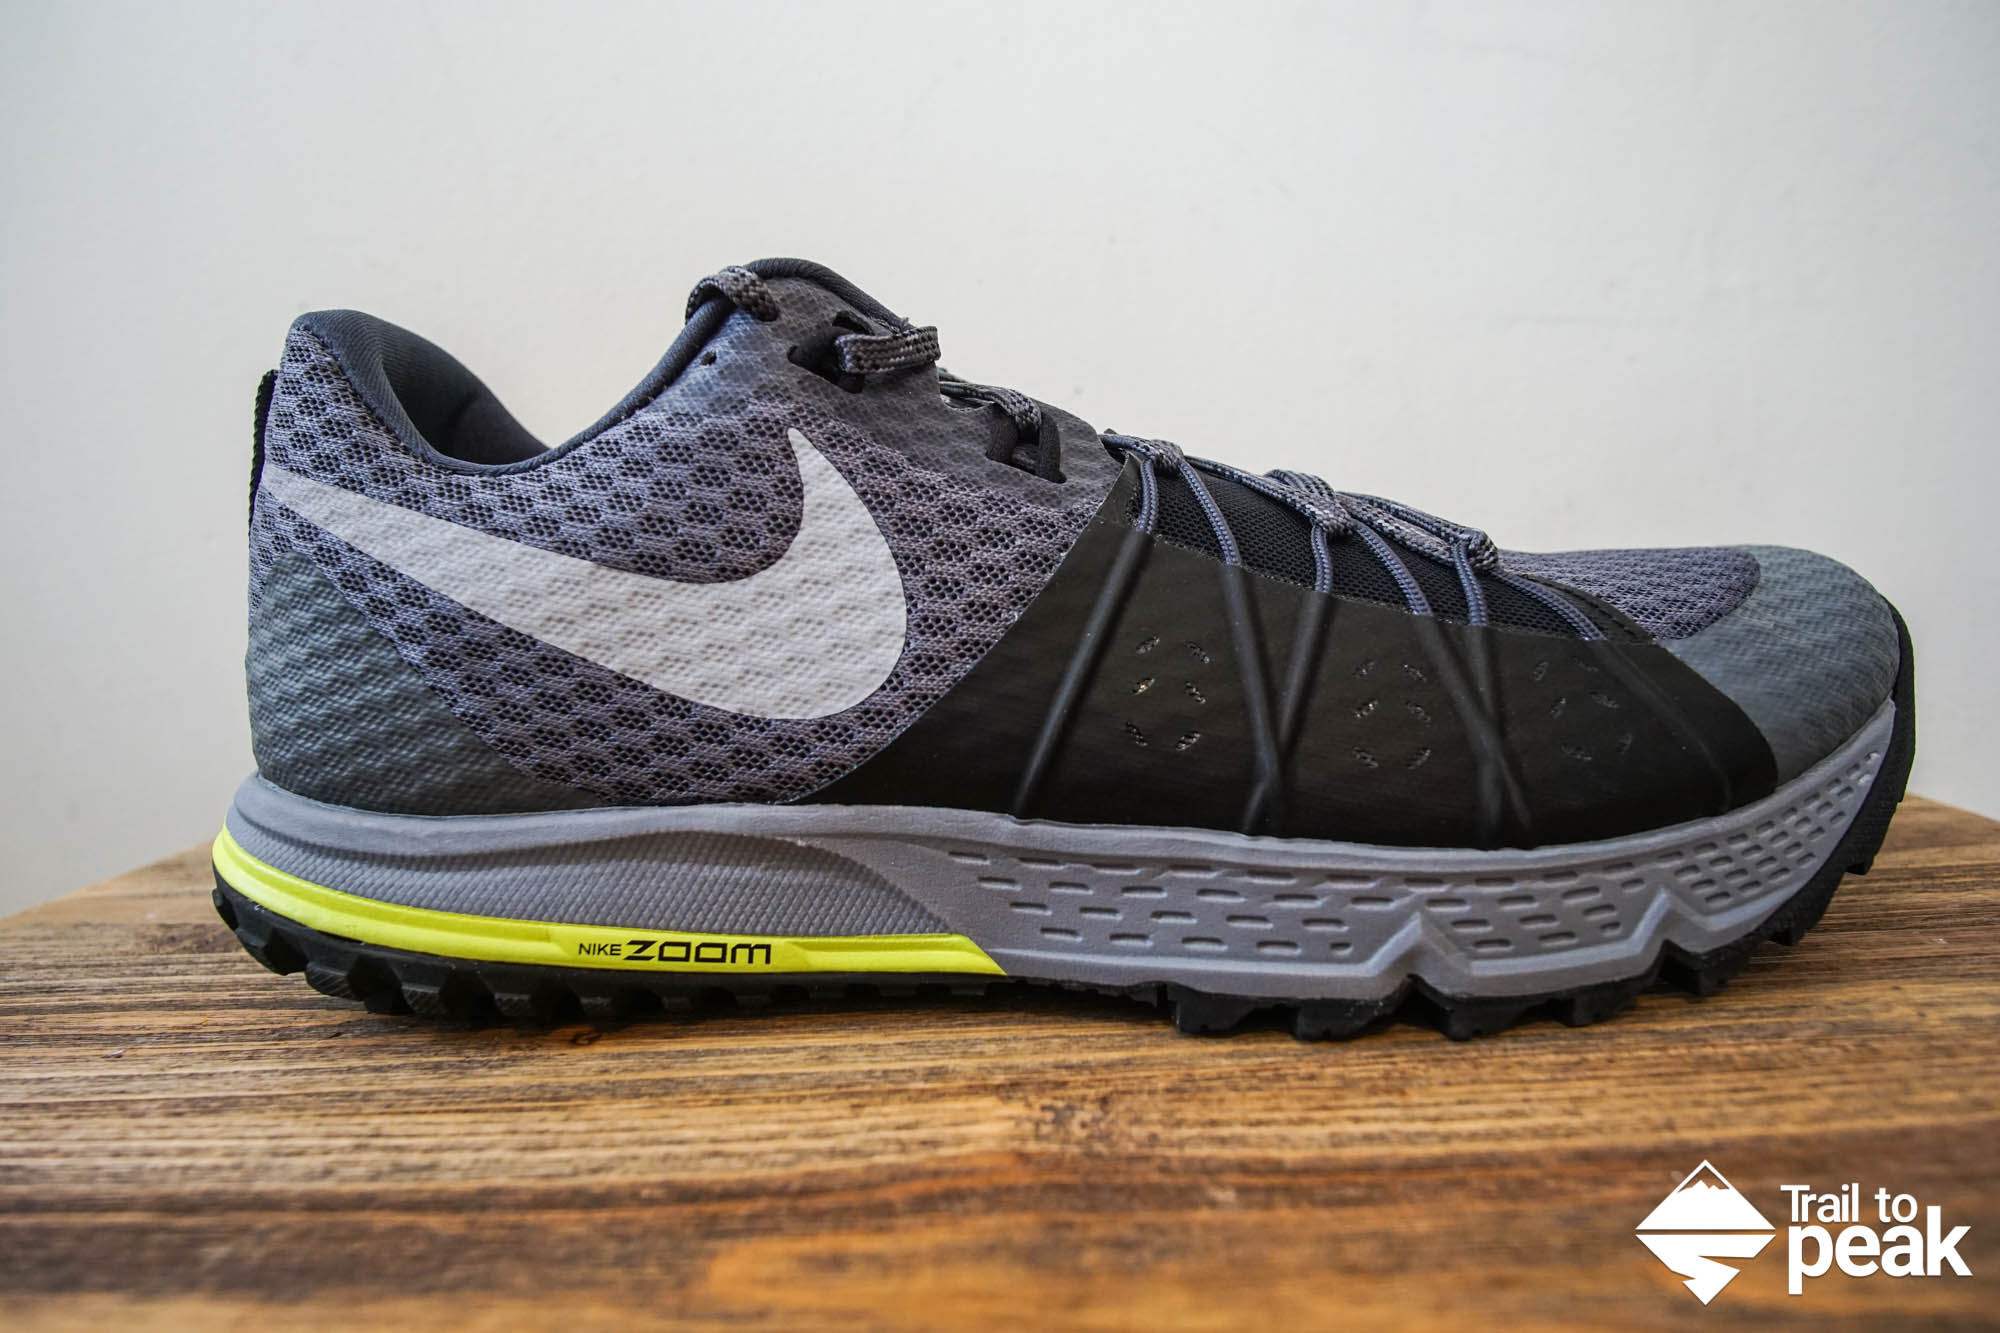 Gear Preview: Nike Wildhorse 4 Trail to Peak